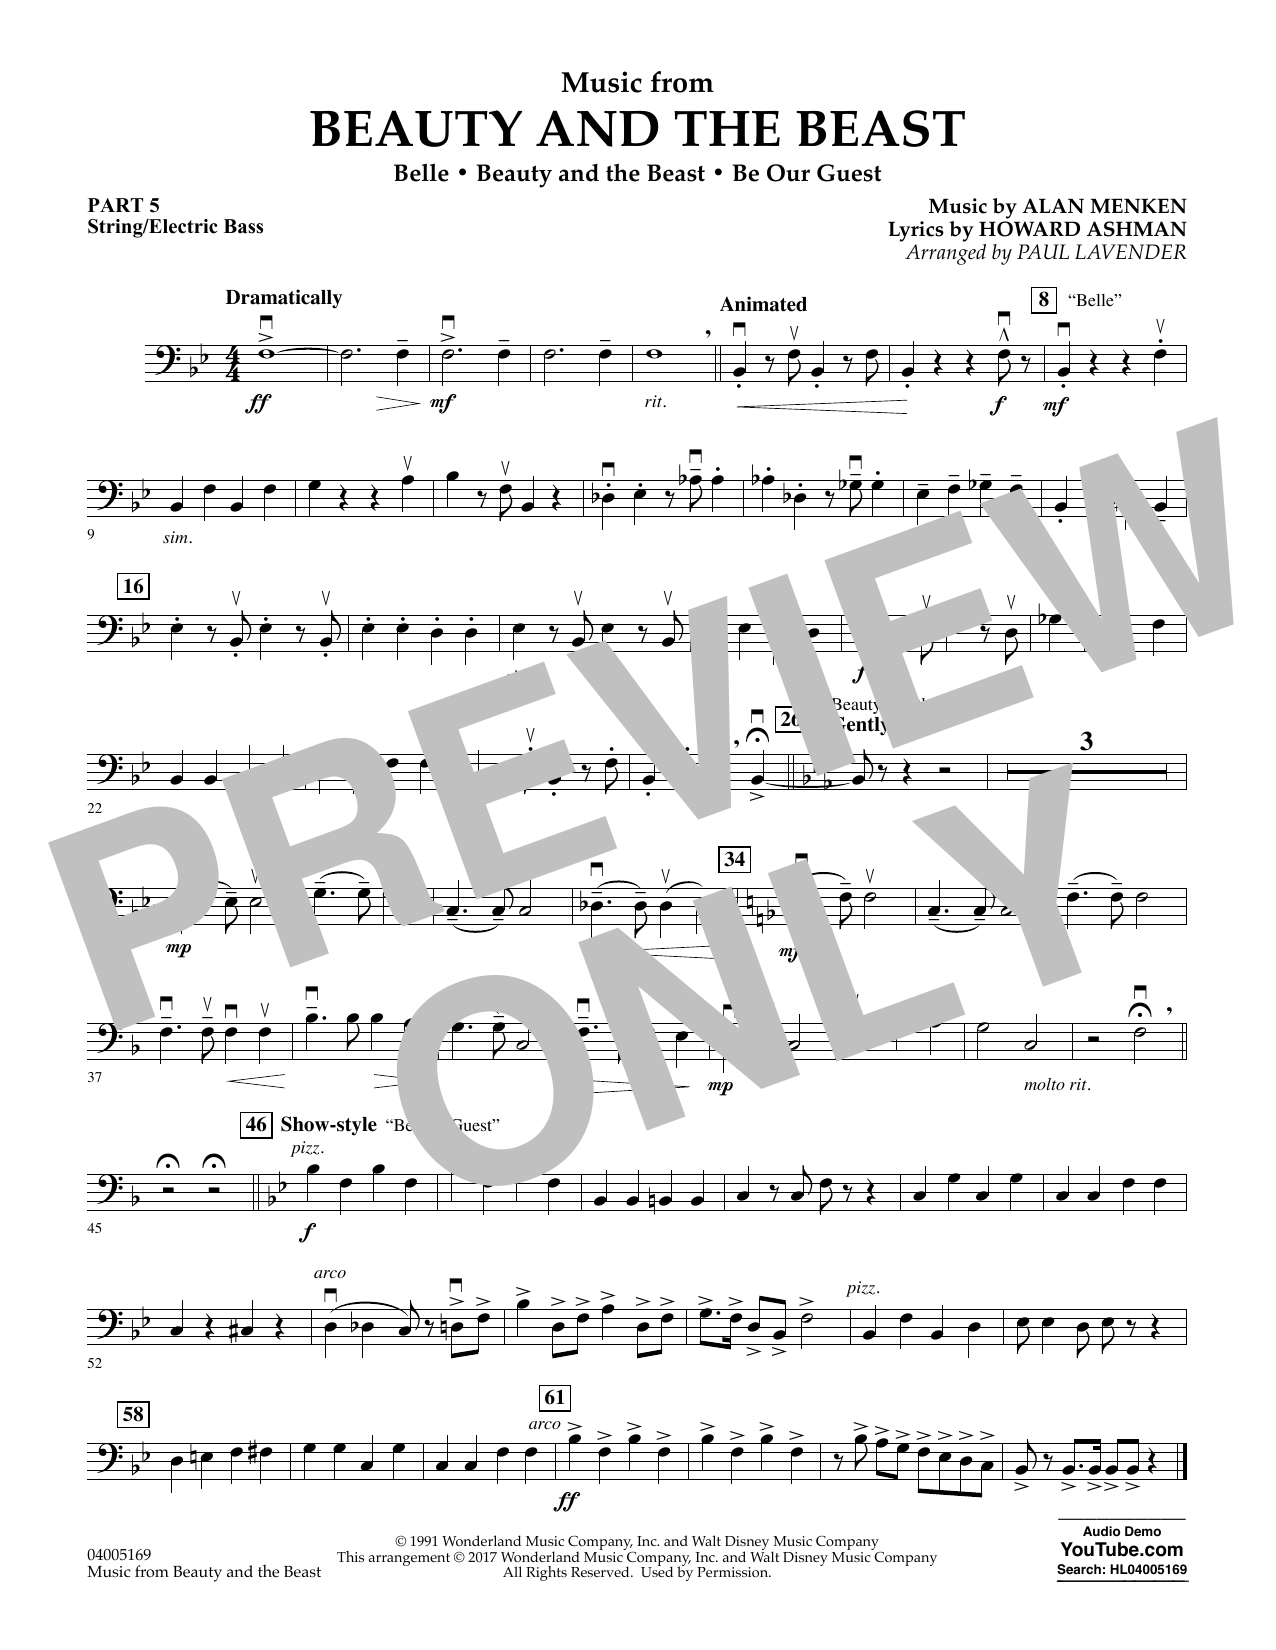 Paul Lavender Music from Beauty and the Beast - Pt.5 - String/Electric Bass sheet music notes and chords. Download Printable PDF.